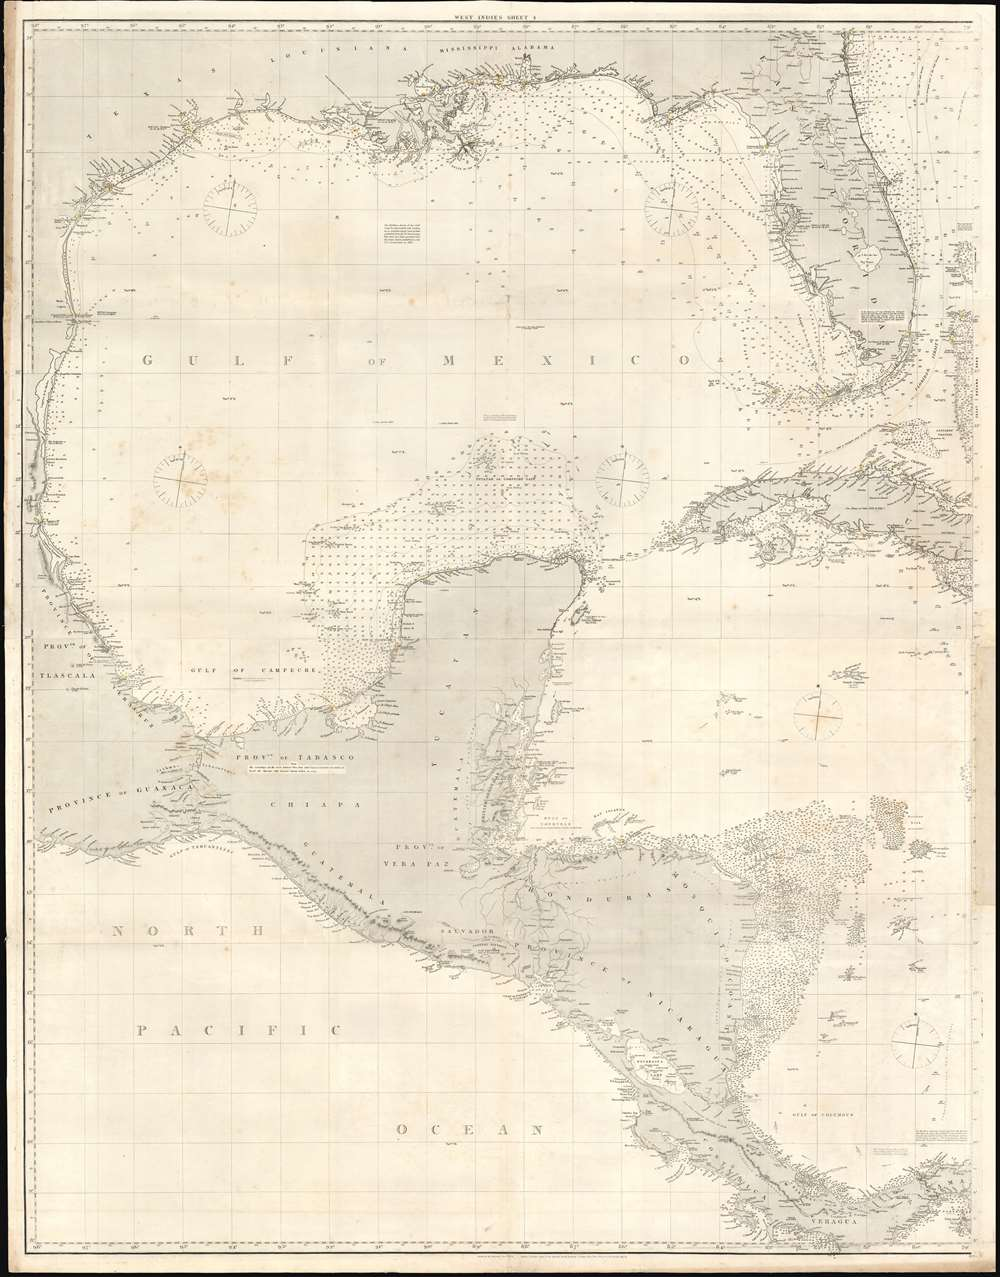 A General Chart of the West Indies and Gulf of Mexico, describing the Gulf and Windward Passages, Coasts of Florida, Louisiana, and Mexico, Bay of Honduras and Musquito Shore; likewise the Coast of the Spanish Main to the Mouths of the Orinoco. - Alternate View 1